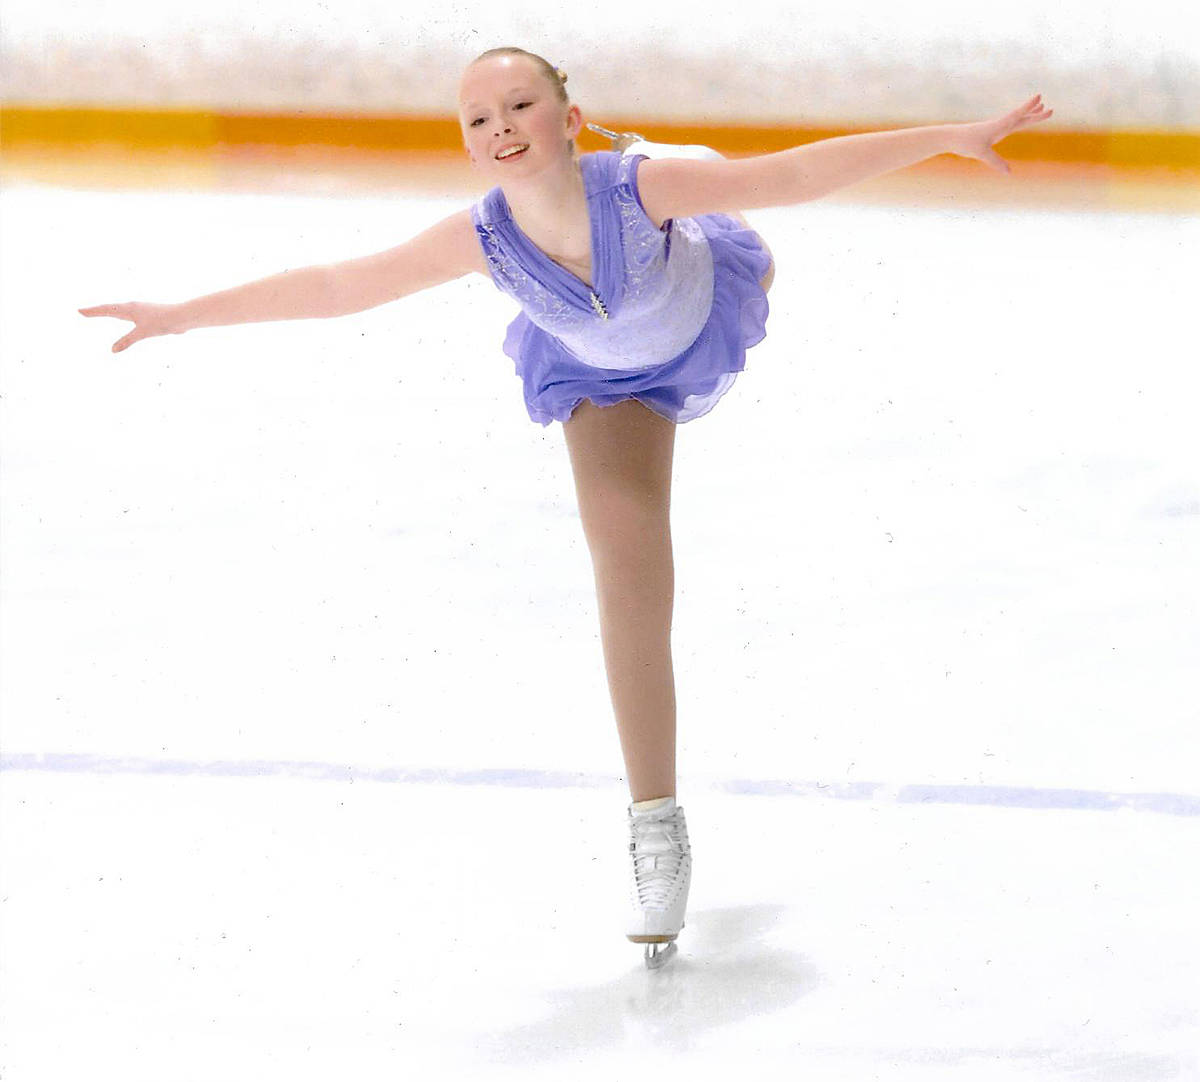 Maya Towstyka brought home a silver during the Skate Canada's B.C. coast regional competitions held virtually earlier this month. (Langley Skating Club/Special to Langley Advance Times)